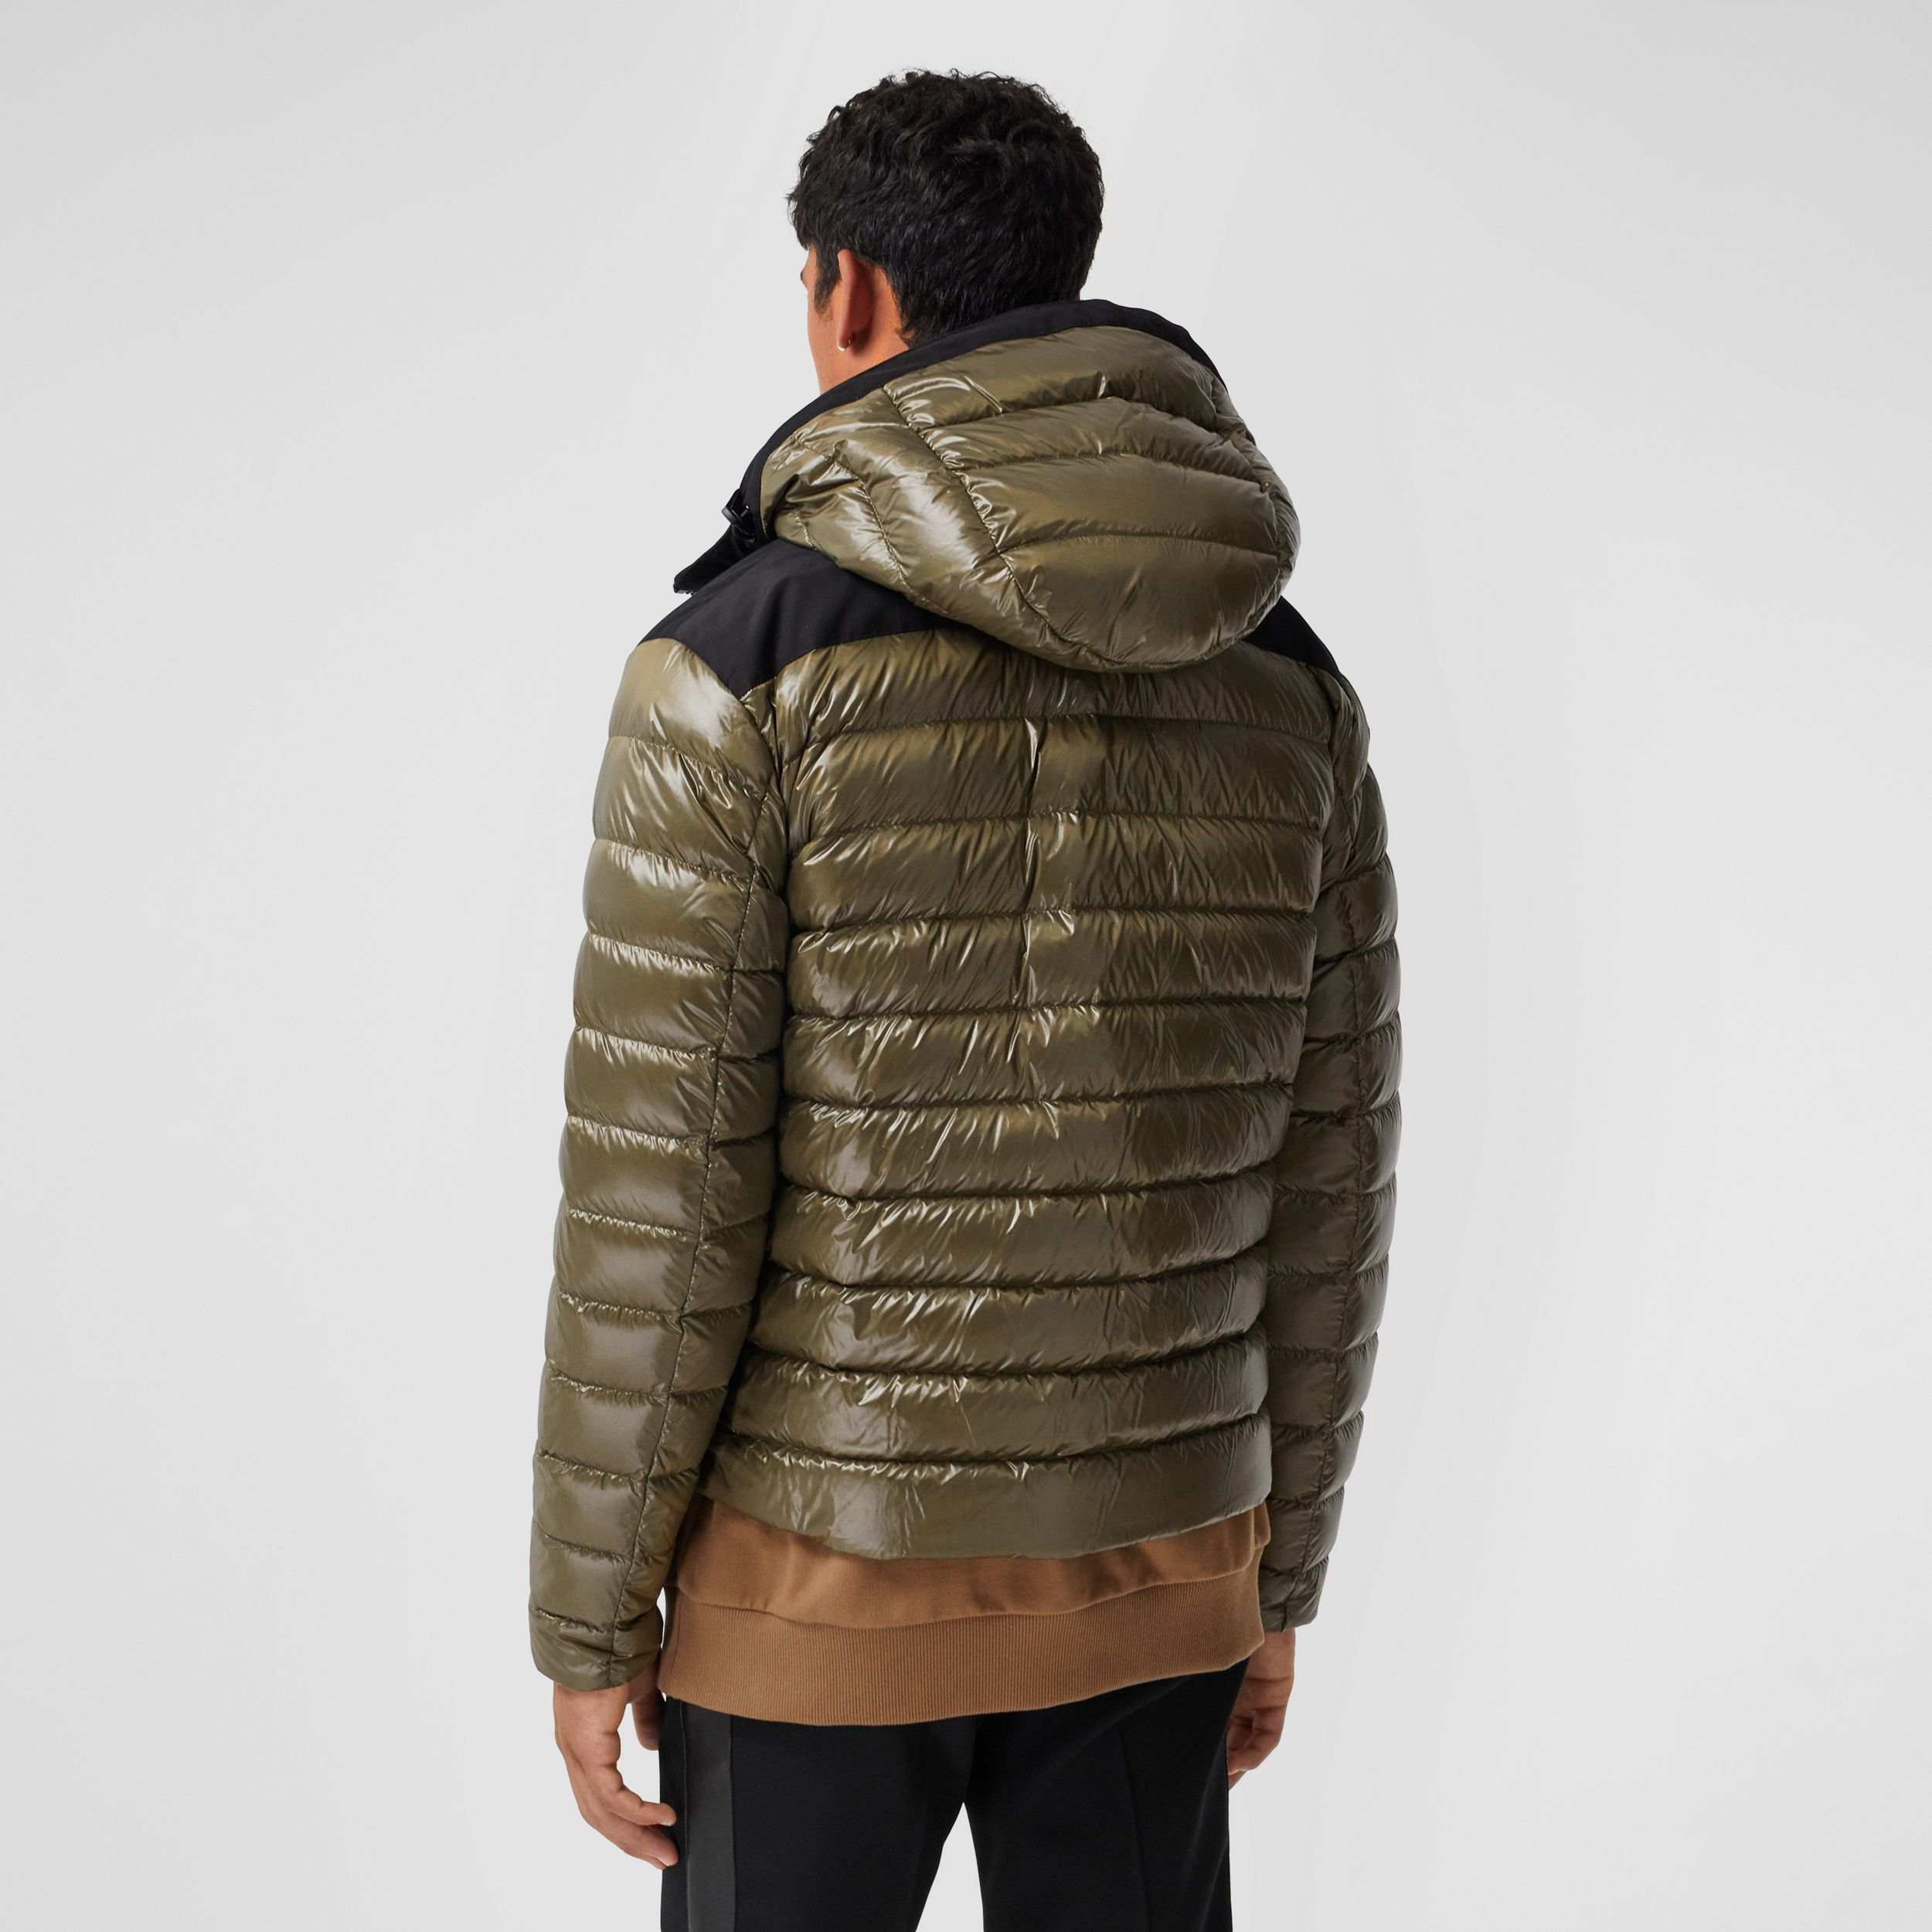 Location Print Hooded Puffer Jacket in Olive - Men | Burberry Canada - 3